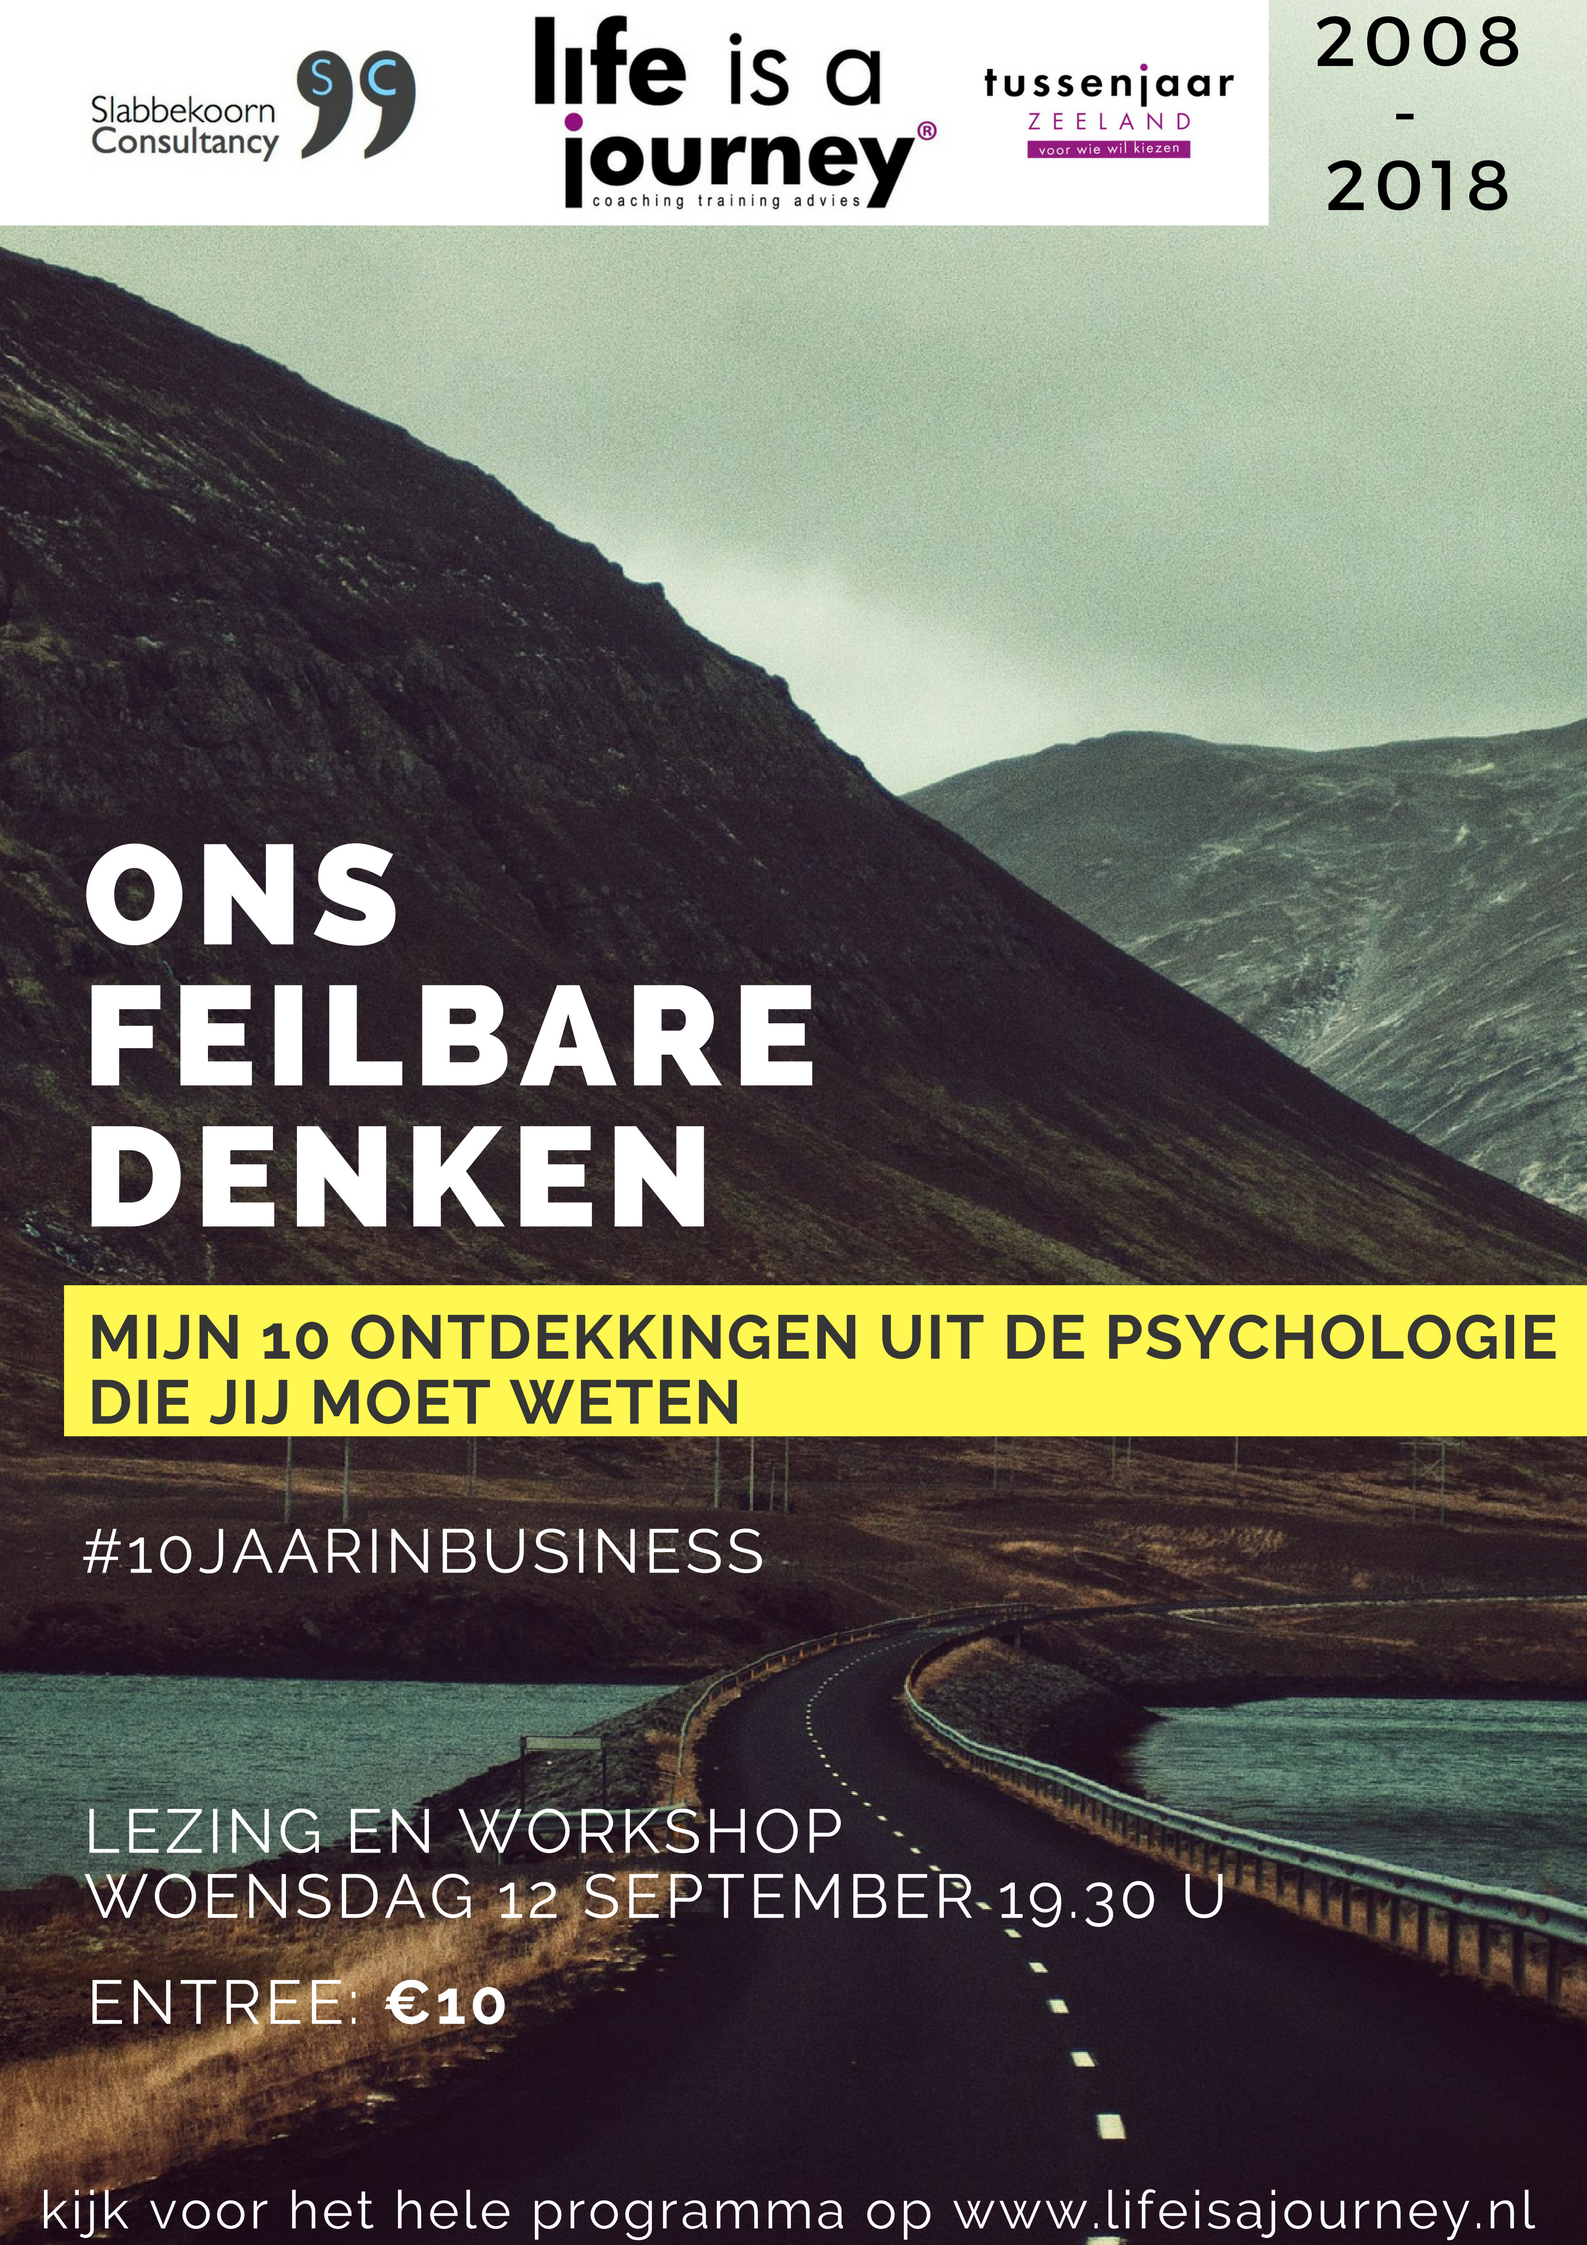 10 ontdekkingen uit de psychologie workshop 12 september